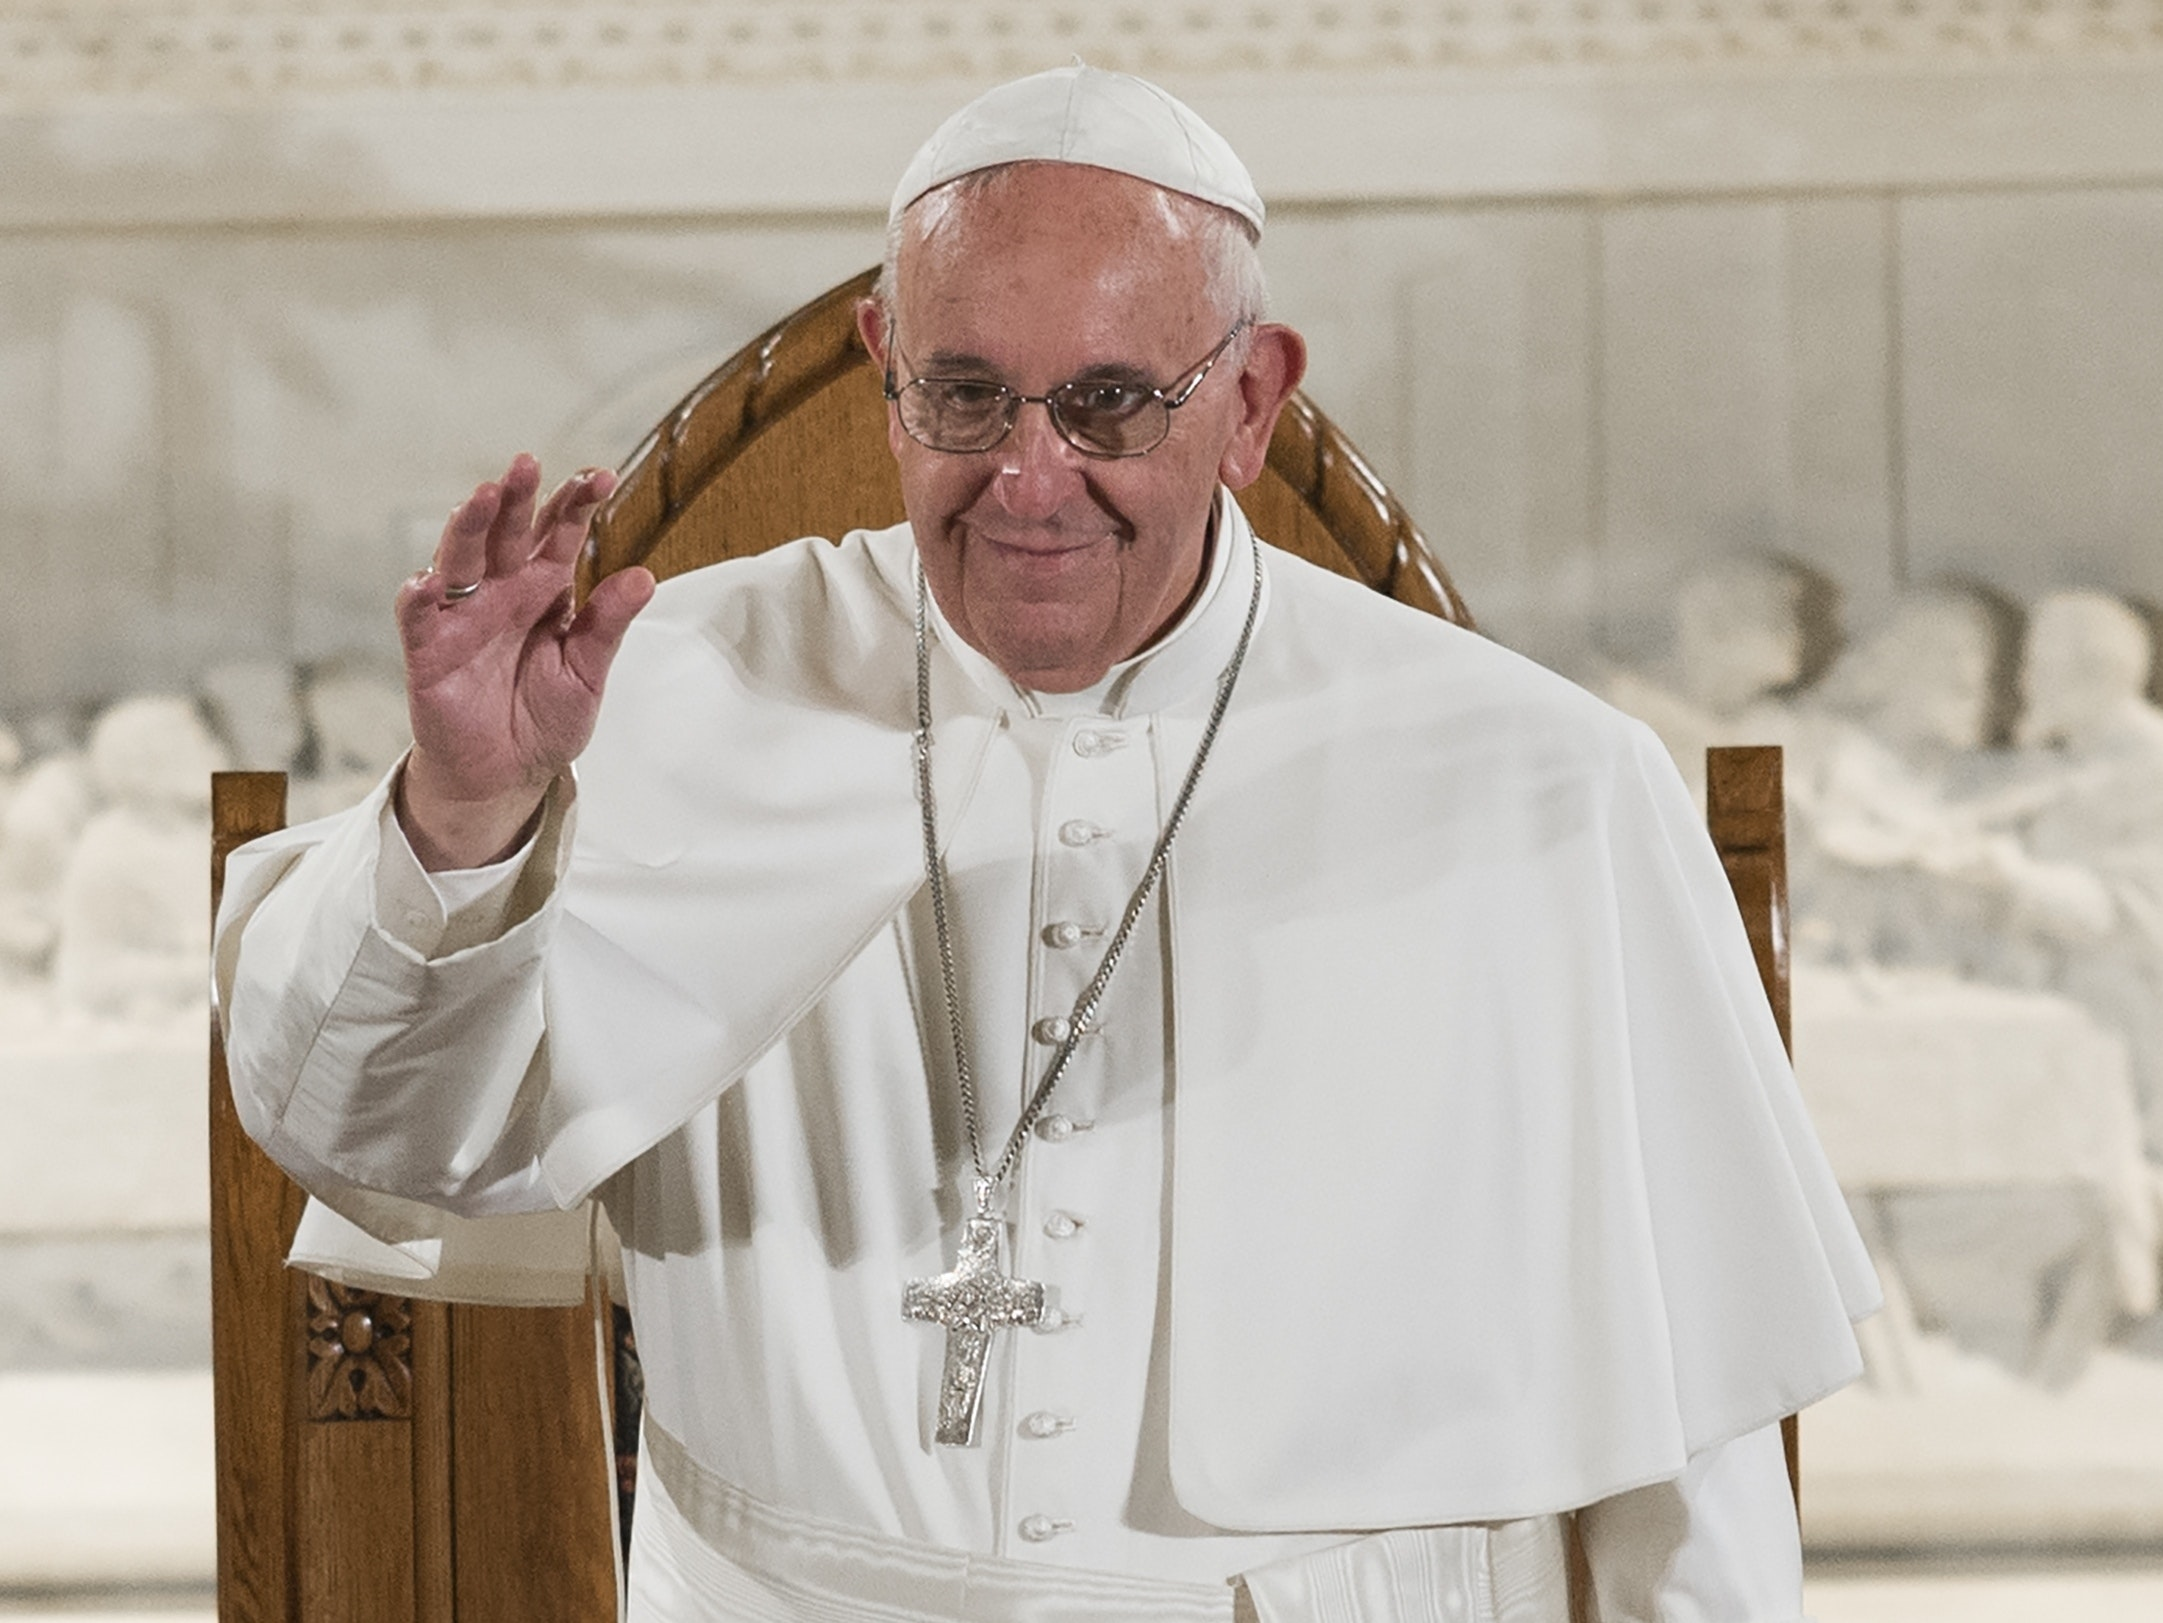 Talkin' Pope Francis: a Catholic Mother and Son Discuss the Pontifex